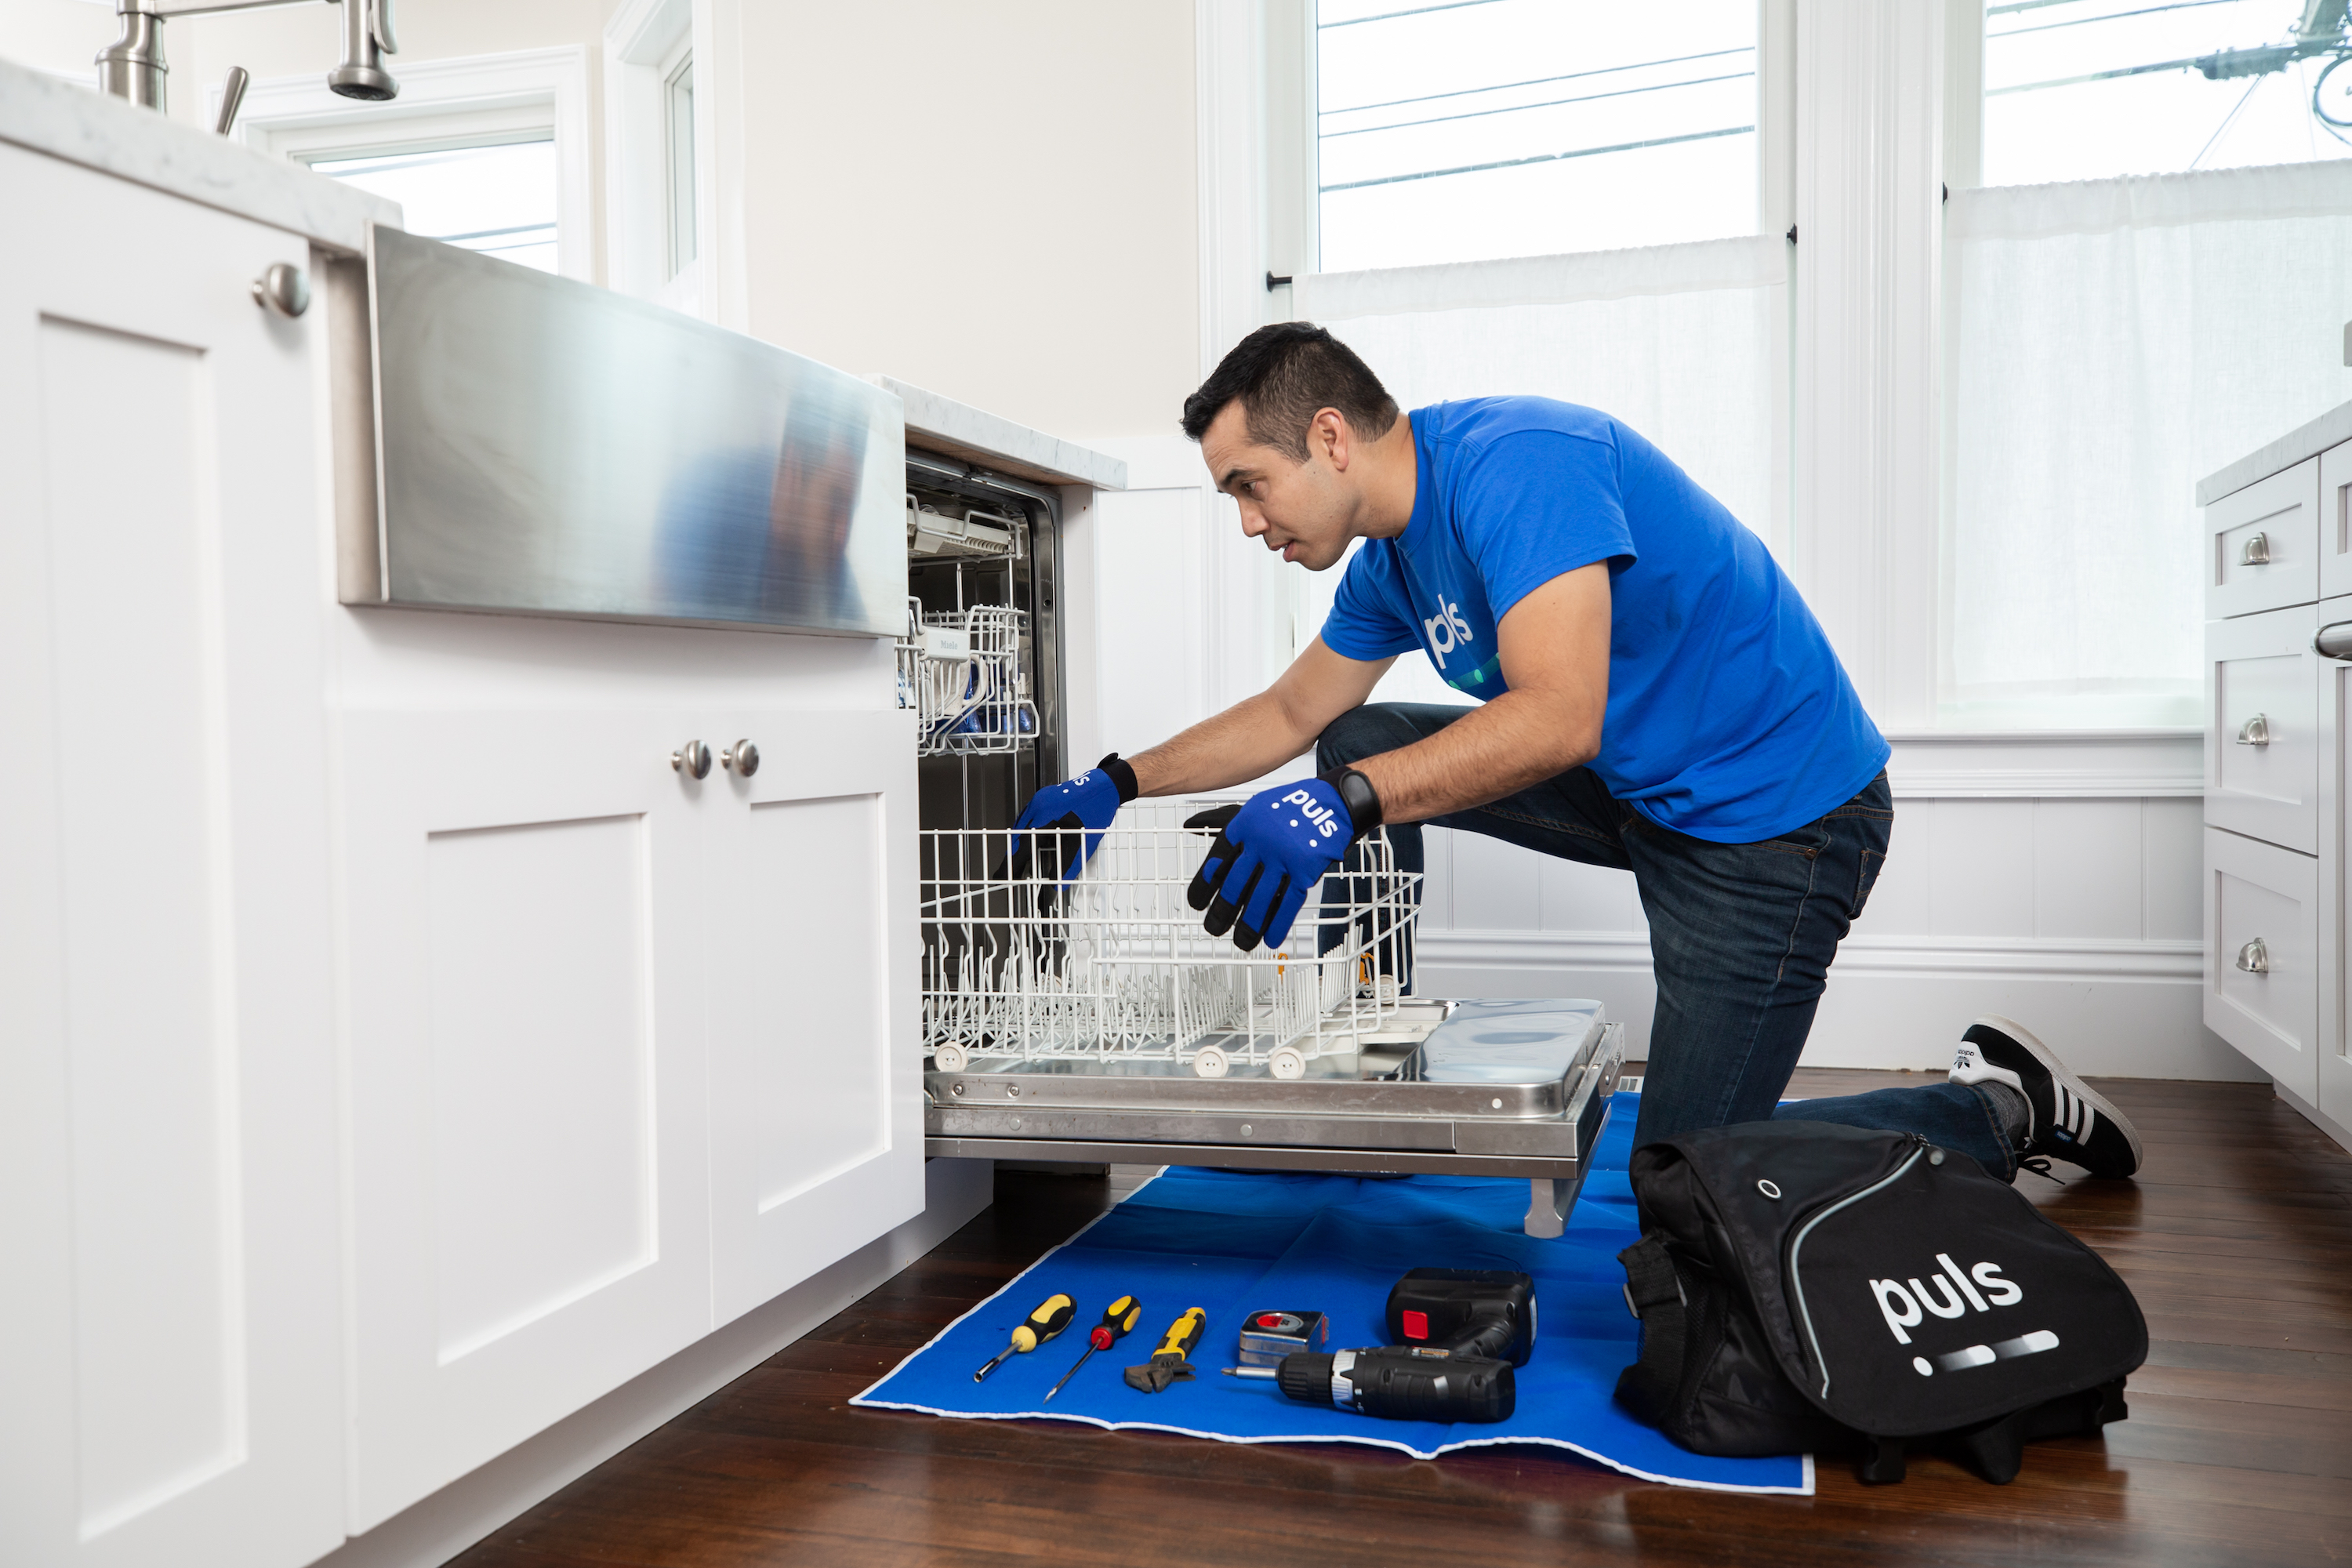 Puls Launches Groundbreaking Appliance Repair Service to Simplify Home  Ownership